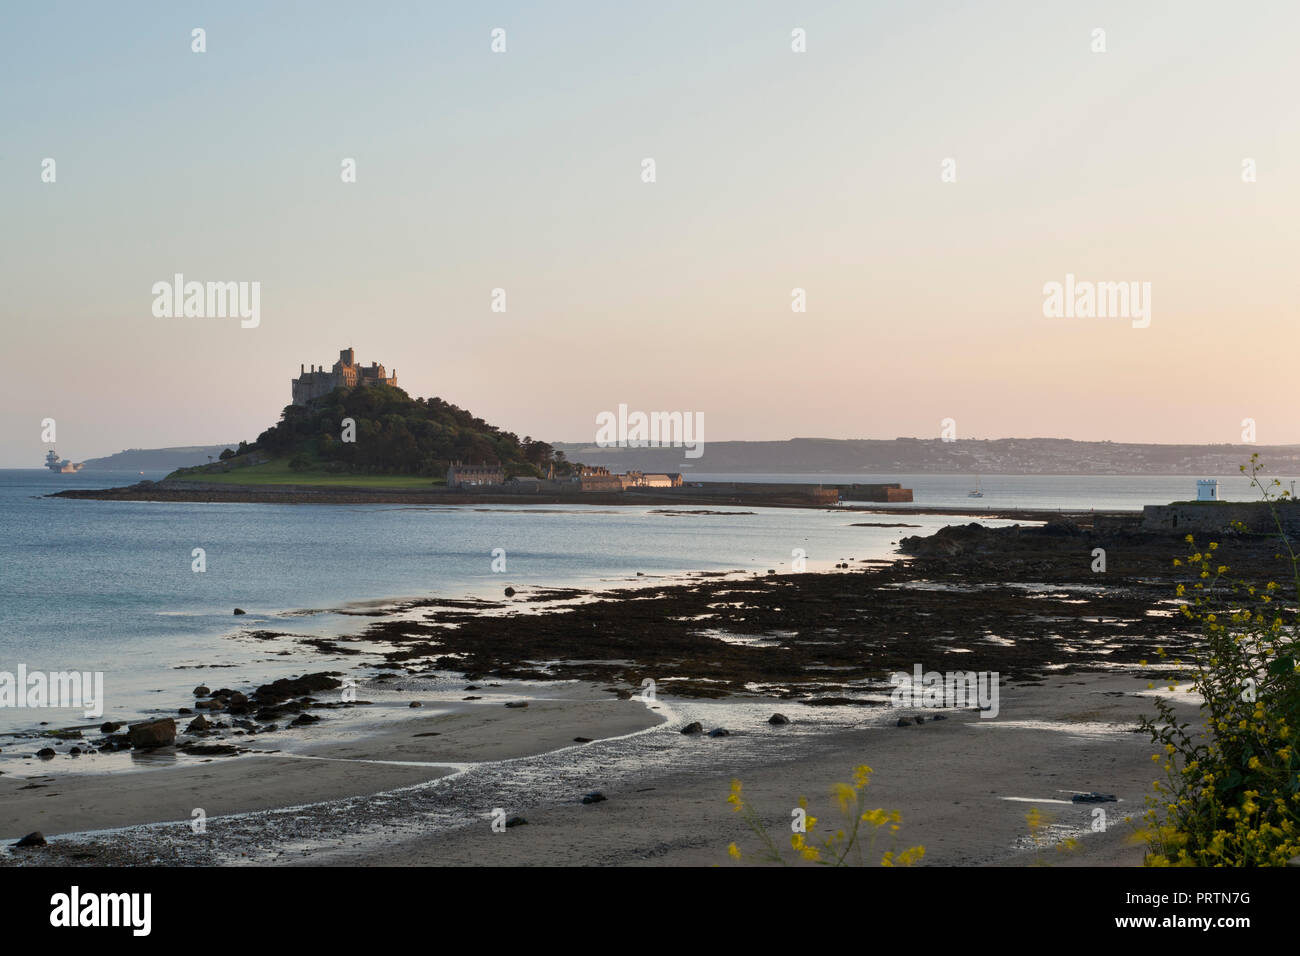 Mount's Bay beach and St. Michael's Mount, with HMS Queen Elizabeth aircraft carrier ship is distance, Cornwall, UK - Stock Image